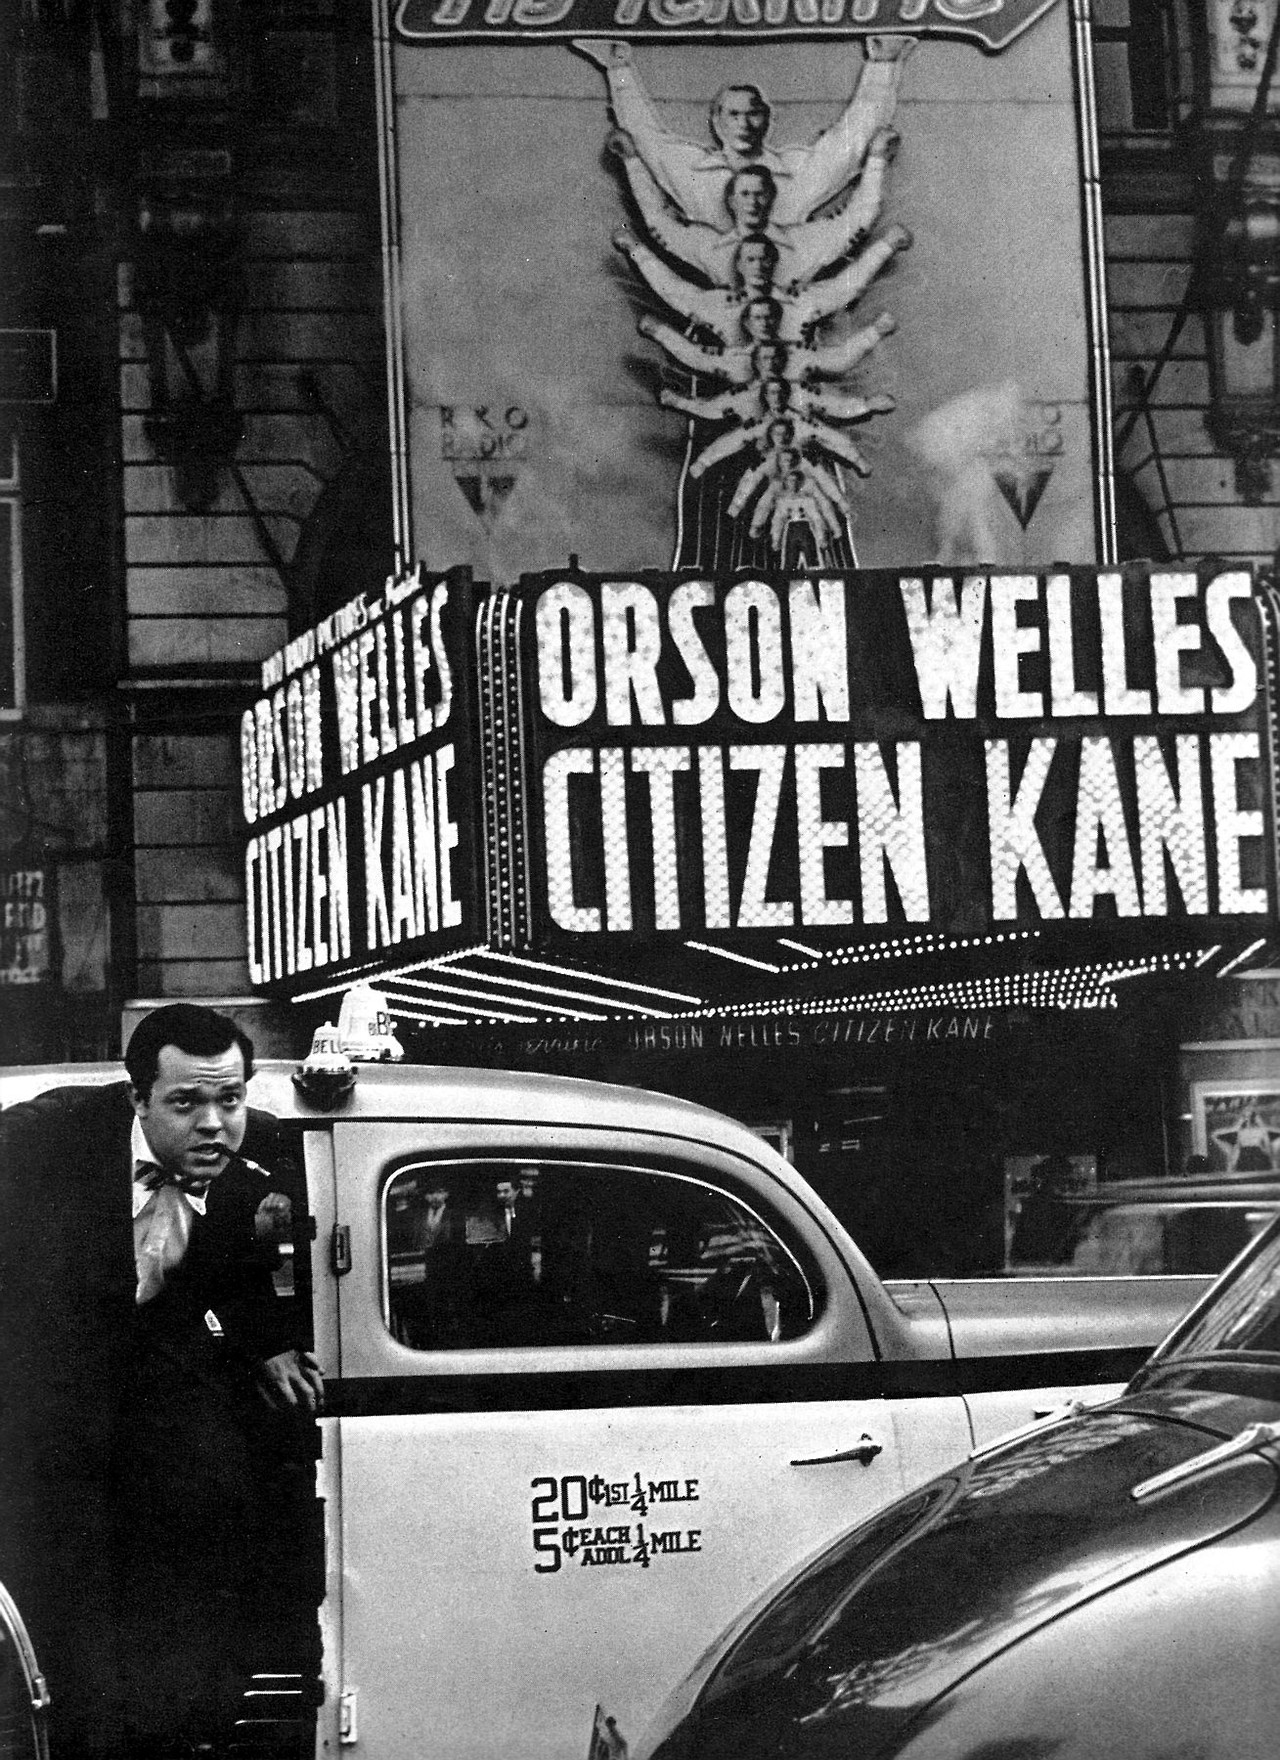 cinephiliabeyond :     Orson Welles talks to Huw Wheldon on the BBC show 'Monitor' (1960) about his work as actor, director and filmmaker, with clips from his films, 'Citizen Kane' and 'The Magnificent Ambersons.'        Also, recommended viewing: Huw Wheldon interviews Orson Welles, Peter O'Toole and Ernest Milton in this epic discussion of 'Hamlet' on the same BBC show from 1963. At the time this programme was made, Peter O'Toole was enjoying his first taste of stardom, having been nominated for an Oscar for his leading role in David Lean's masterpiece, 'Lawrence of Arabia.' During the same year (1963), he would also star as 'Hamlet' in the National Theatre's inaugural performance, directed by Laurence Olivier. O'Toole's stage credentials were impeccable, as he had been recruited to the Royal Shakespeare Company by Peter Hall at the tender age of 26.        Required viewing: a vintage interview captures the artist reflecting on 'Citizen Kane' and expounding on directing, acting and writing and his desire to bestow a valuable legacy upon his profession. The scene is a hotel room in Paris. The year 1960. The star, Orson Welles. This is a pearl of cinematic memorabilia.